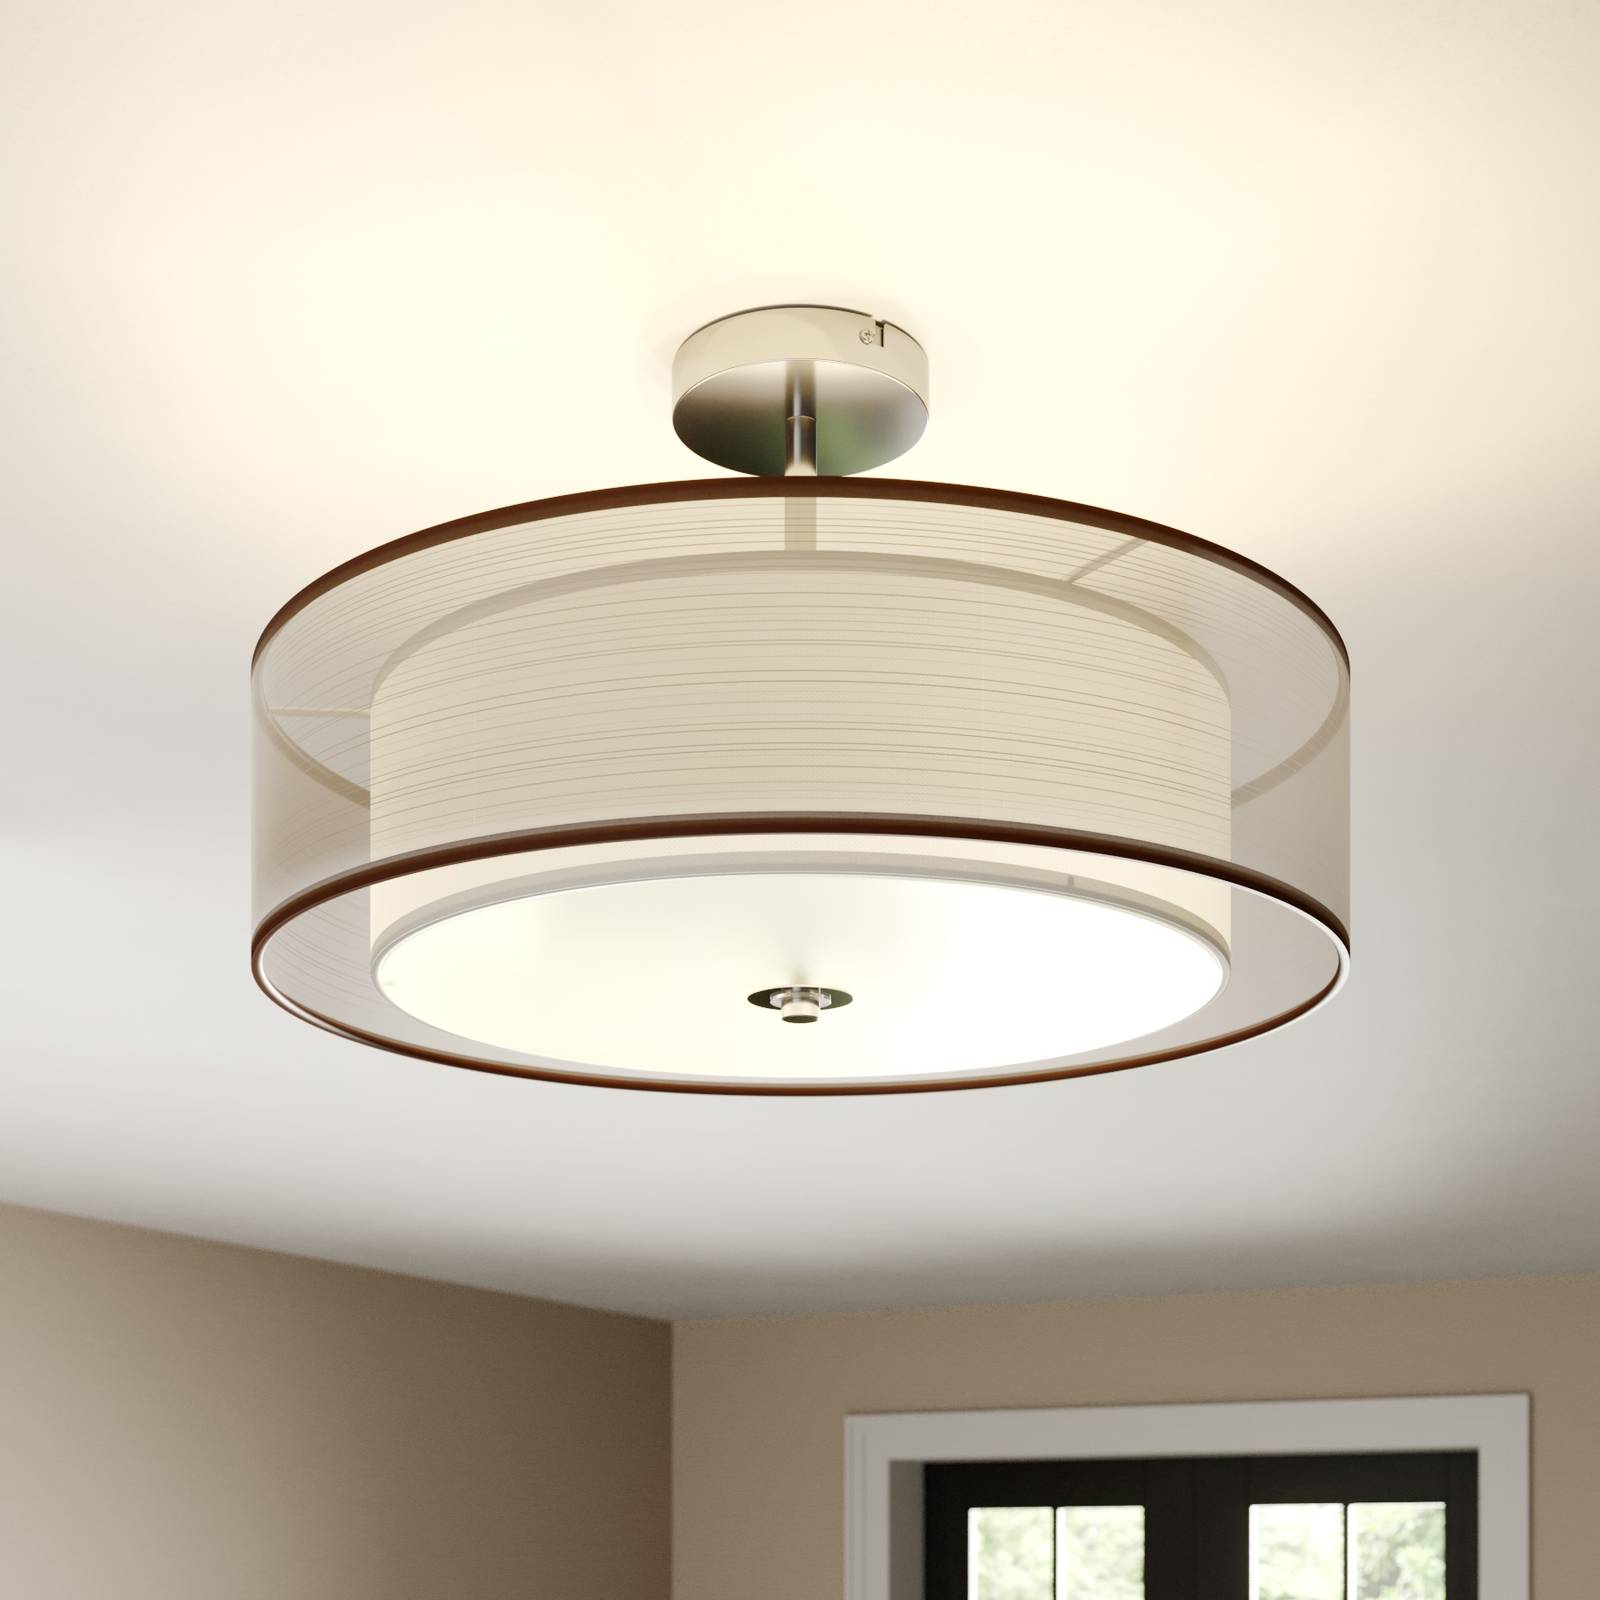 Pikka LED ceiling light with a brown lampshade from Lindby